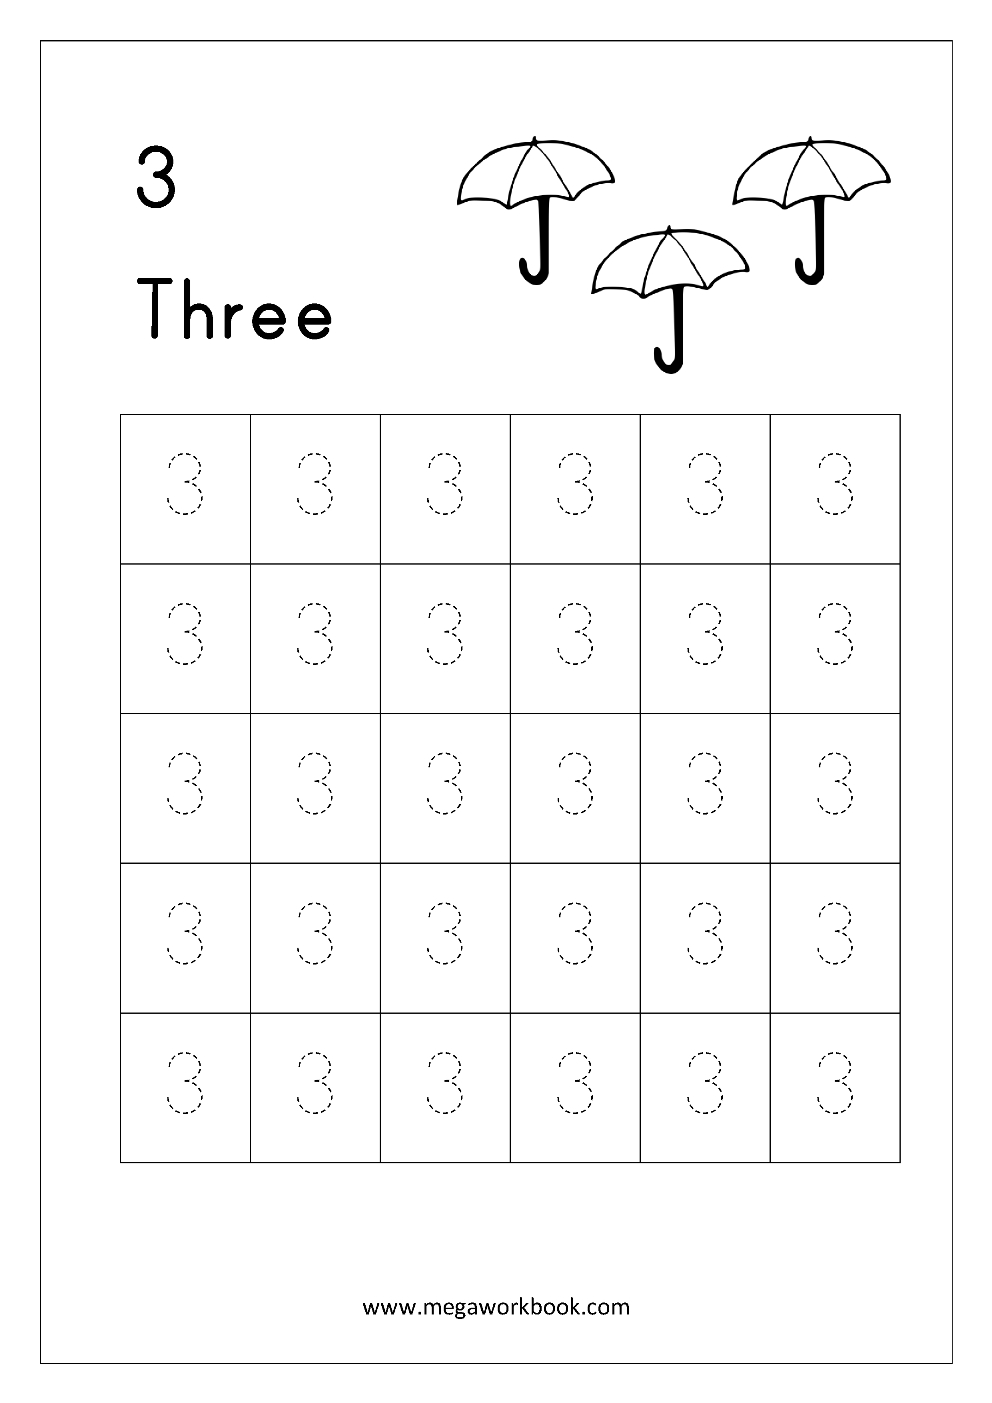 Number Tracing - Tracing Numbers - Number Tracing Worksheets for Letter 3 Tracing